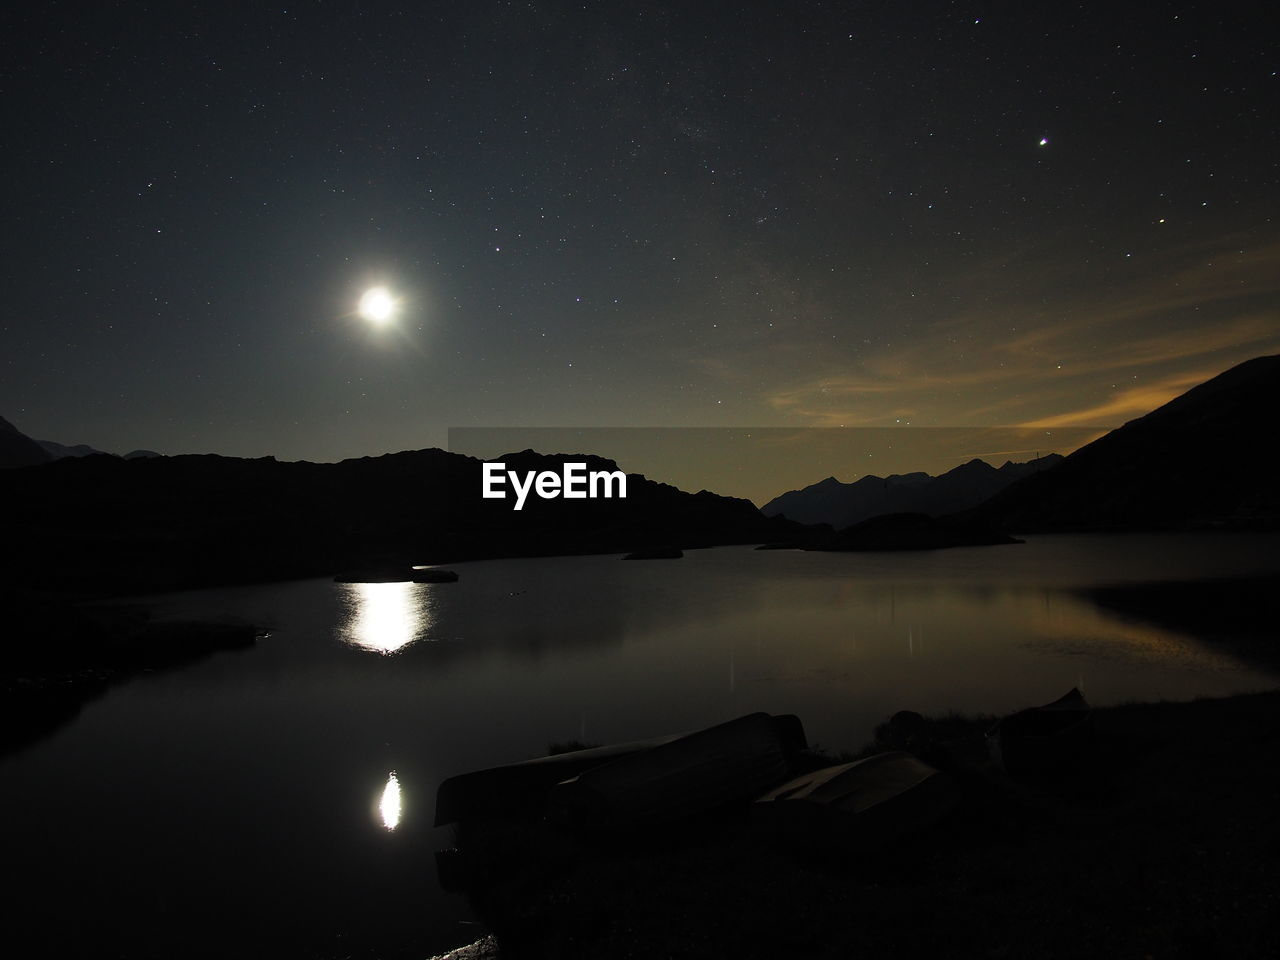 sky, water, night, scenics - nature, beauty in nature, tranquility, tranquil scene, moon, lake, reflection, nature, mountain, no people, astronomy, space, moonlight, idyllic, star - space, silhouette, full moon, outdoors, planetary moon